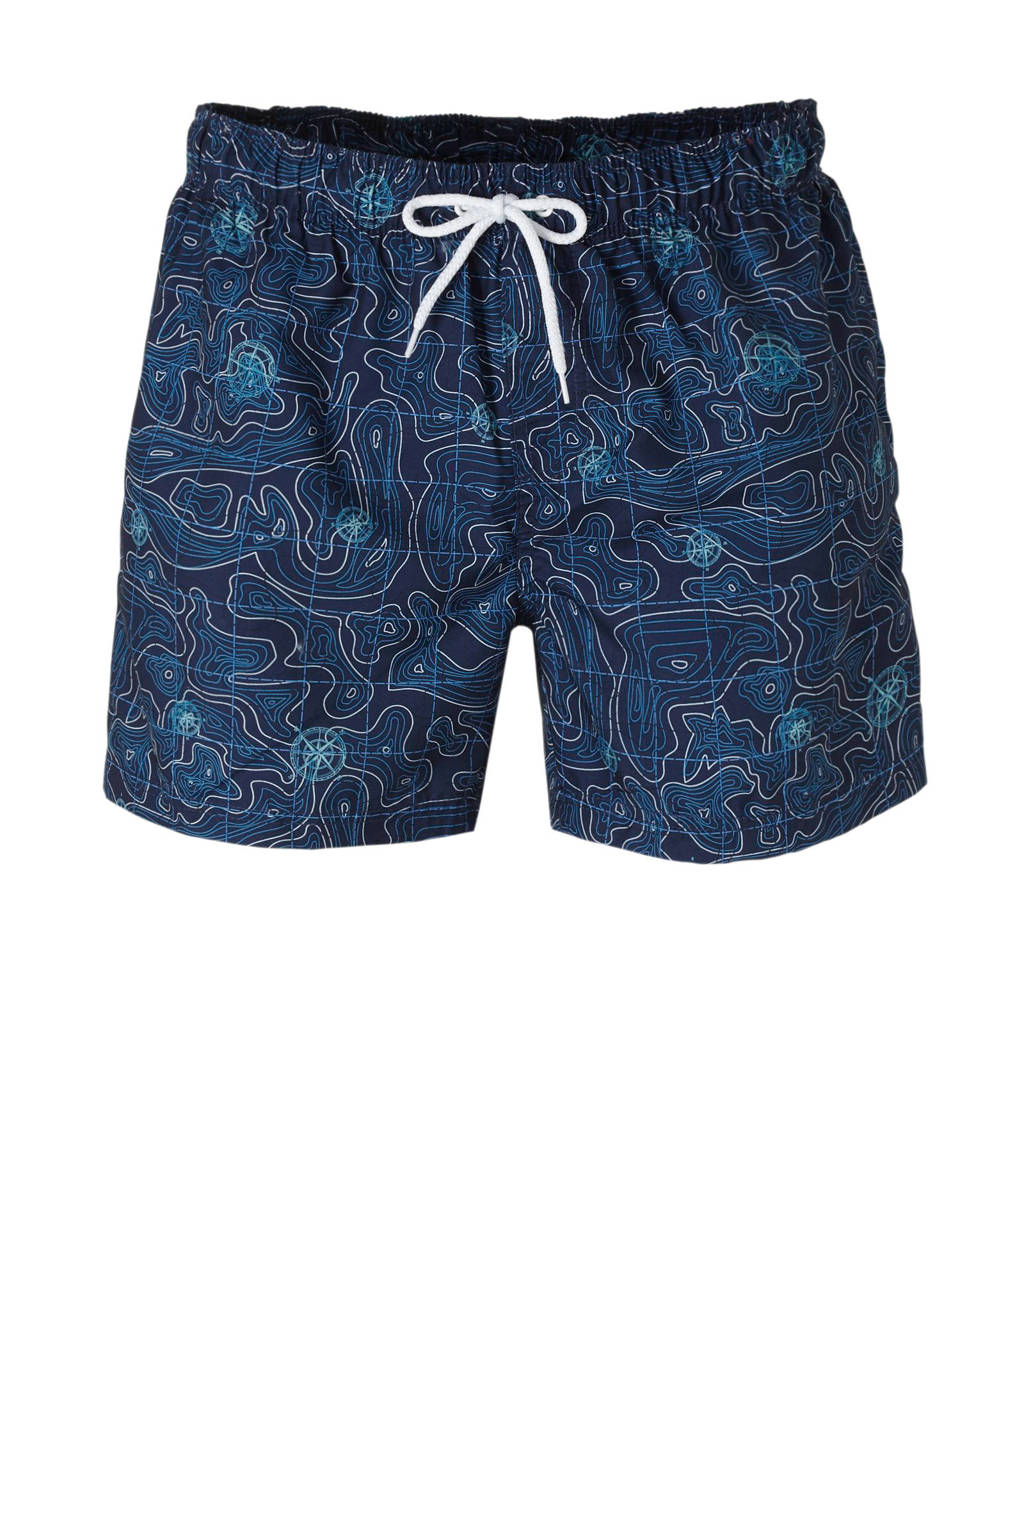 C&A zwemshort met all over print blauw, Blauw/turquoise/wit